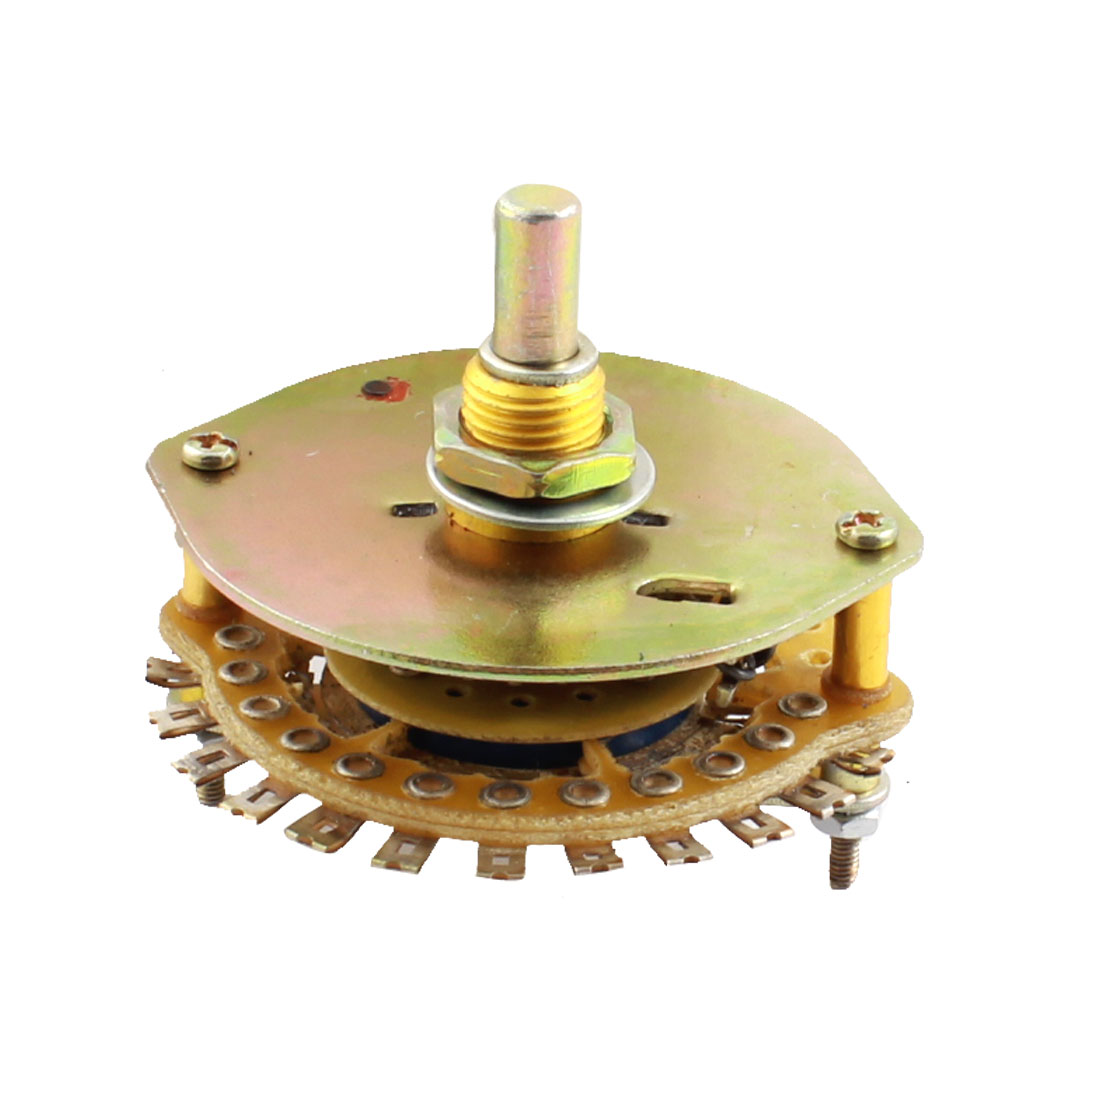 UXCELL 1P12t 1 Deck 12 Position 12 Way Band Channel Selector Electric Rotary Switch uxcell kcx2 6 10mm mounting hole dia 2p6t 2 pole 5 way two decks 14pin band channael rotary switch selector